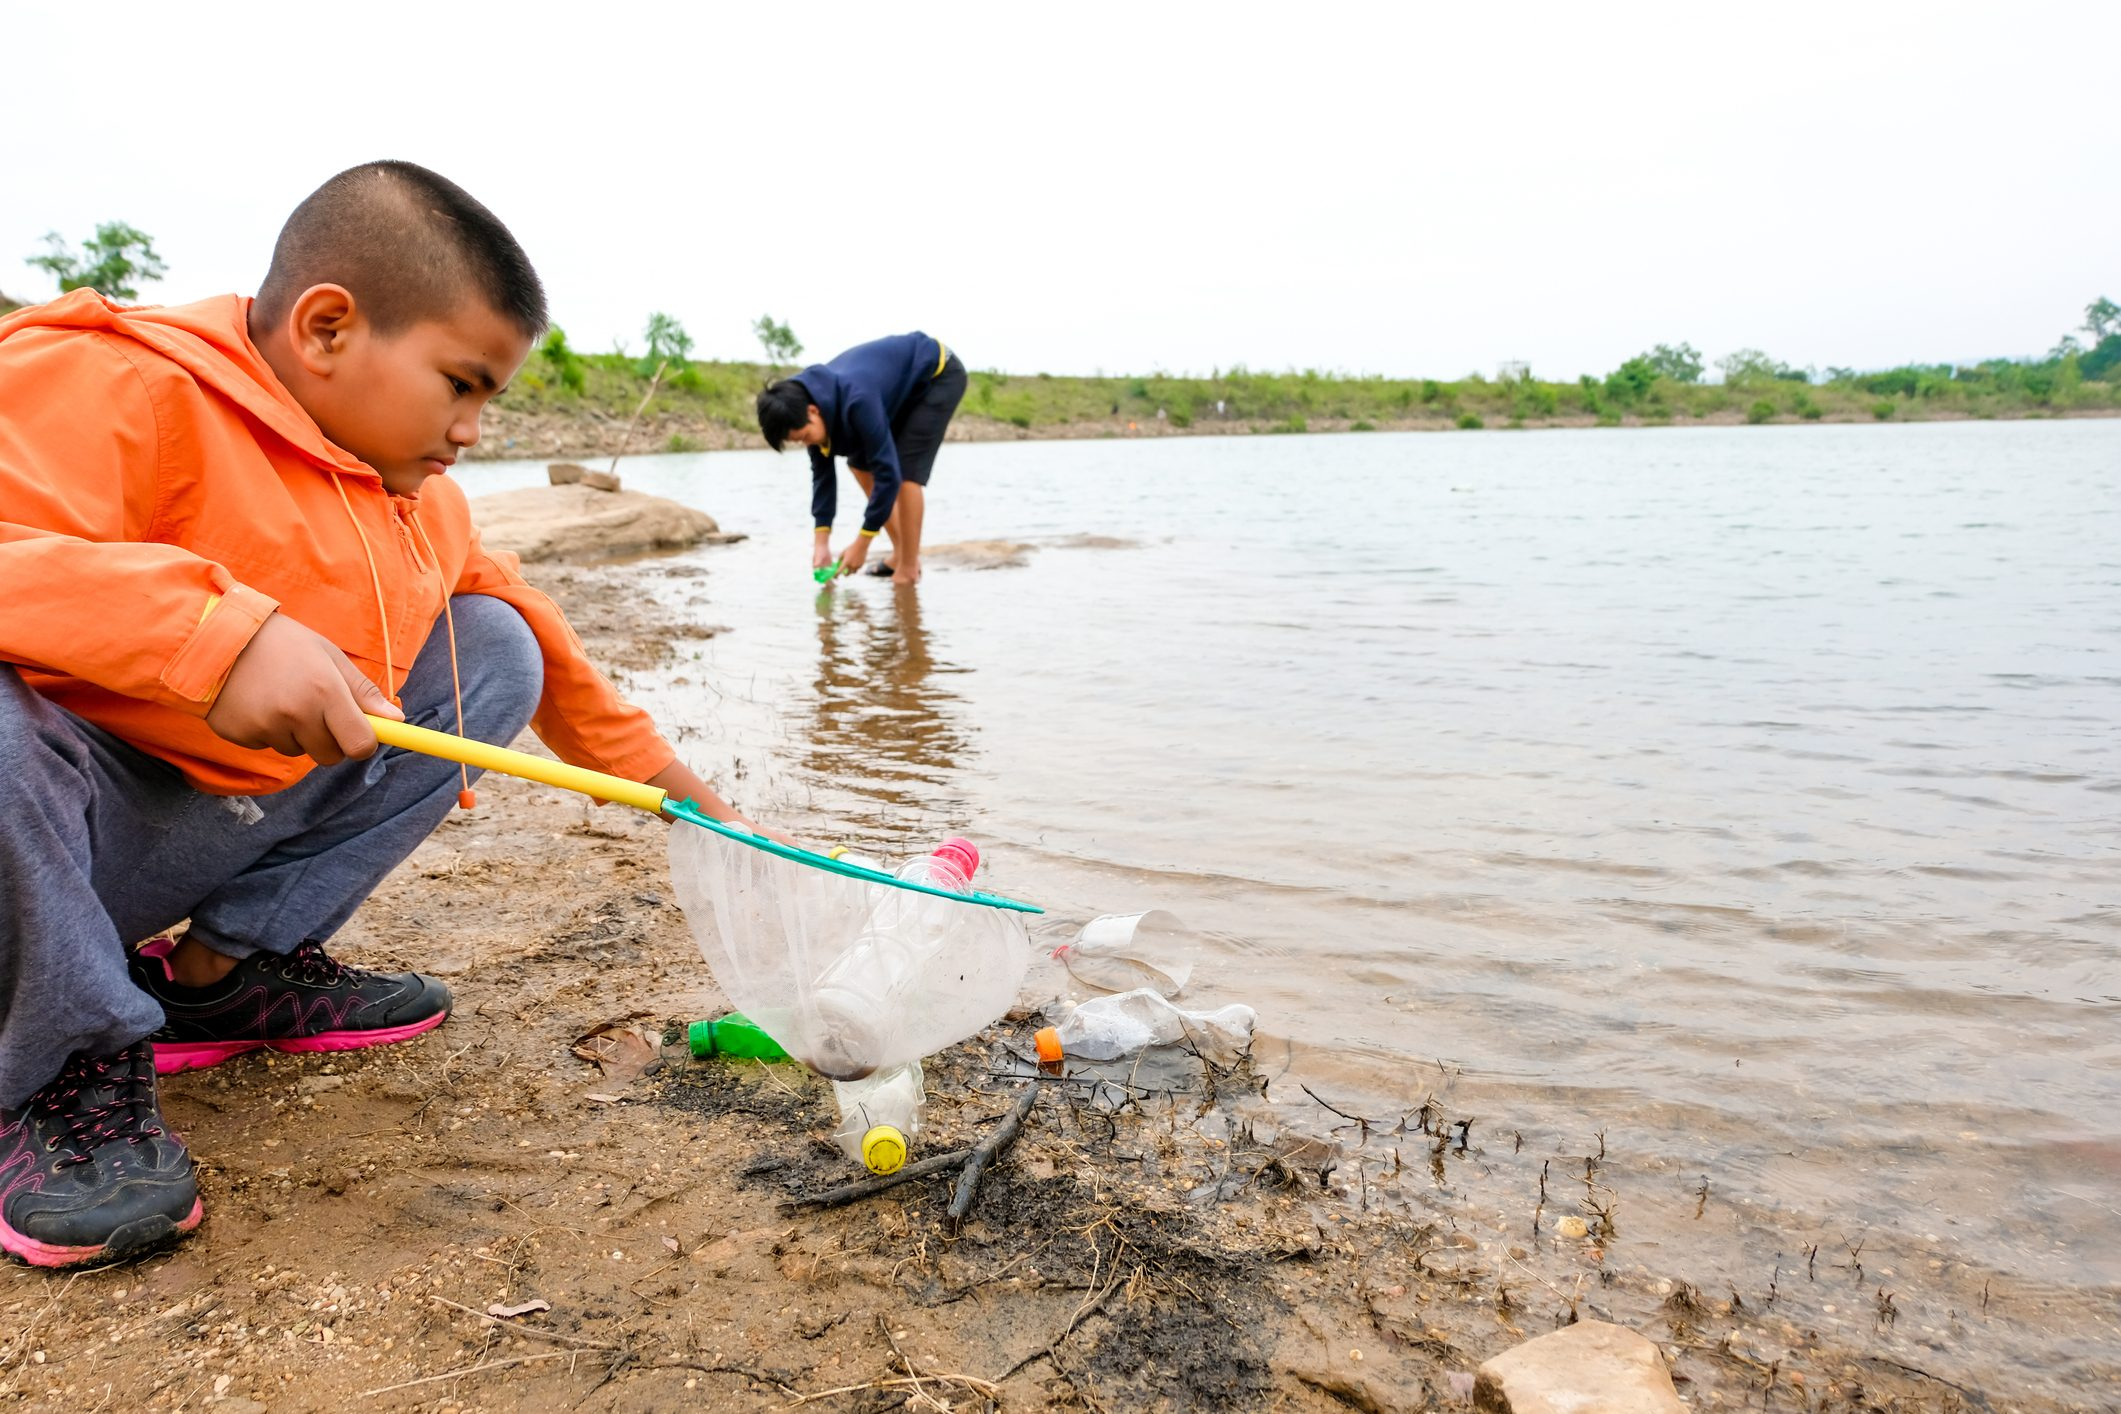 young boy removing trash from river